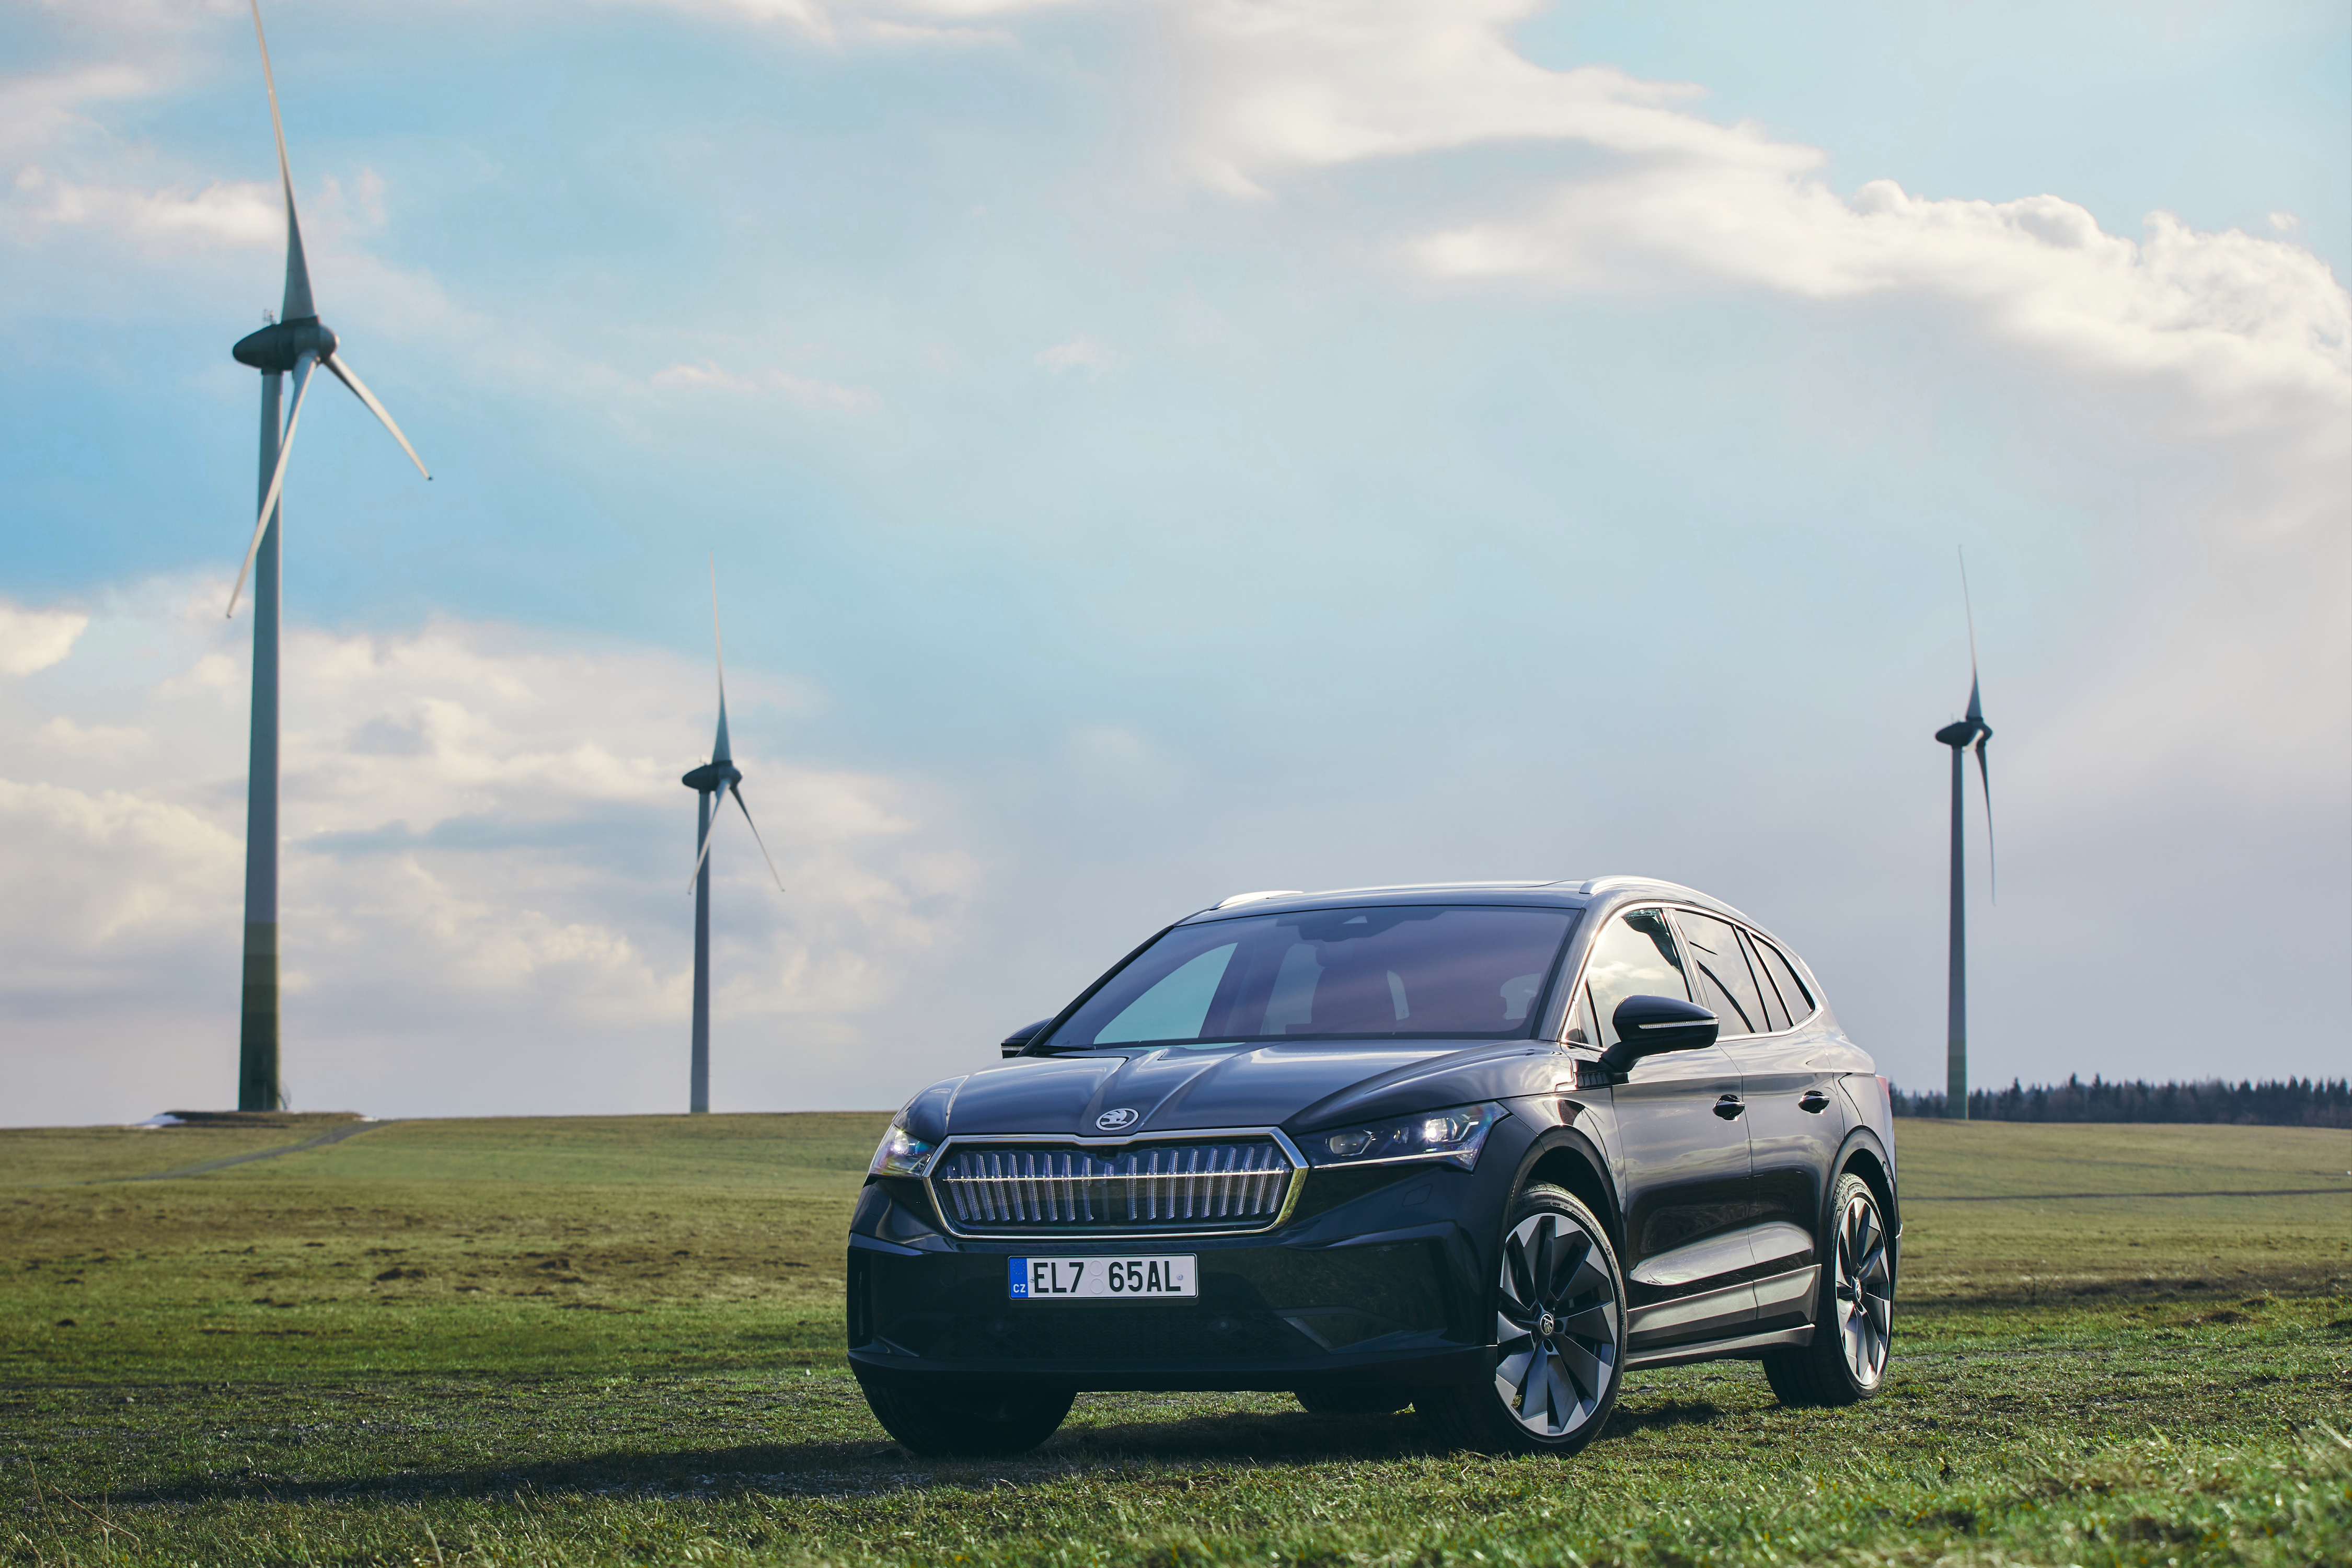 SKODA AUTO delivers the ENYAQ iV to customers with a carbon-neutral balance sheet - Image 1